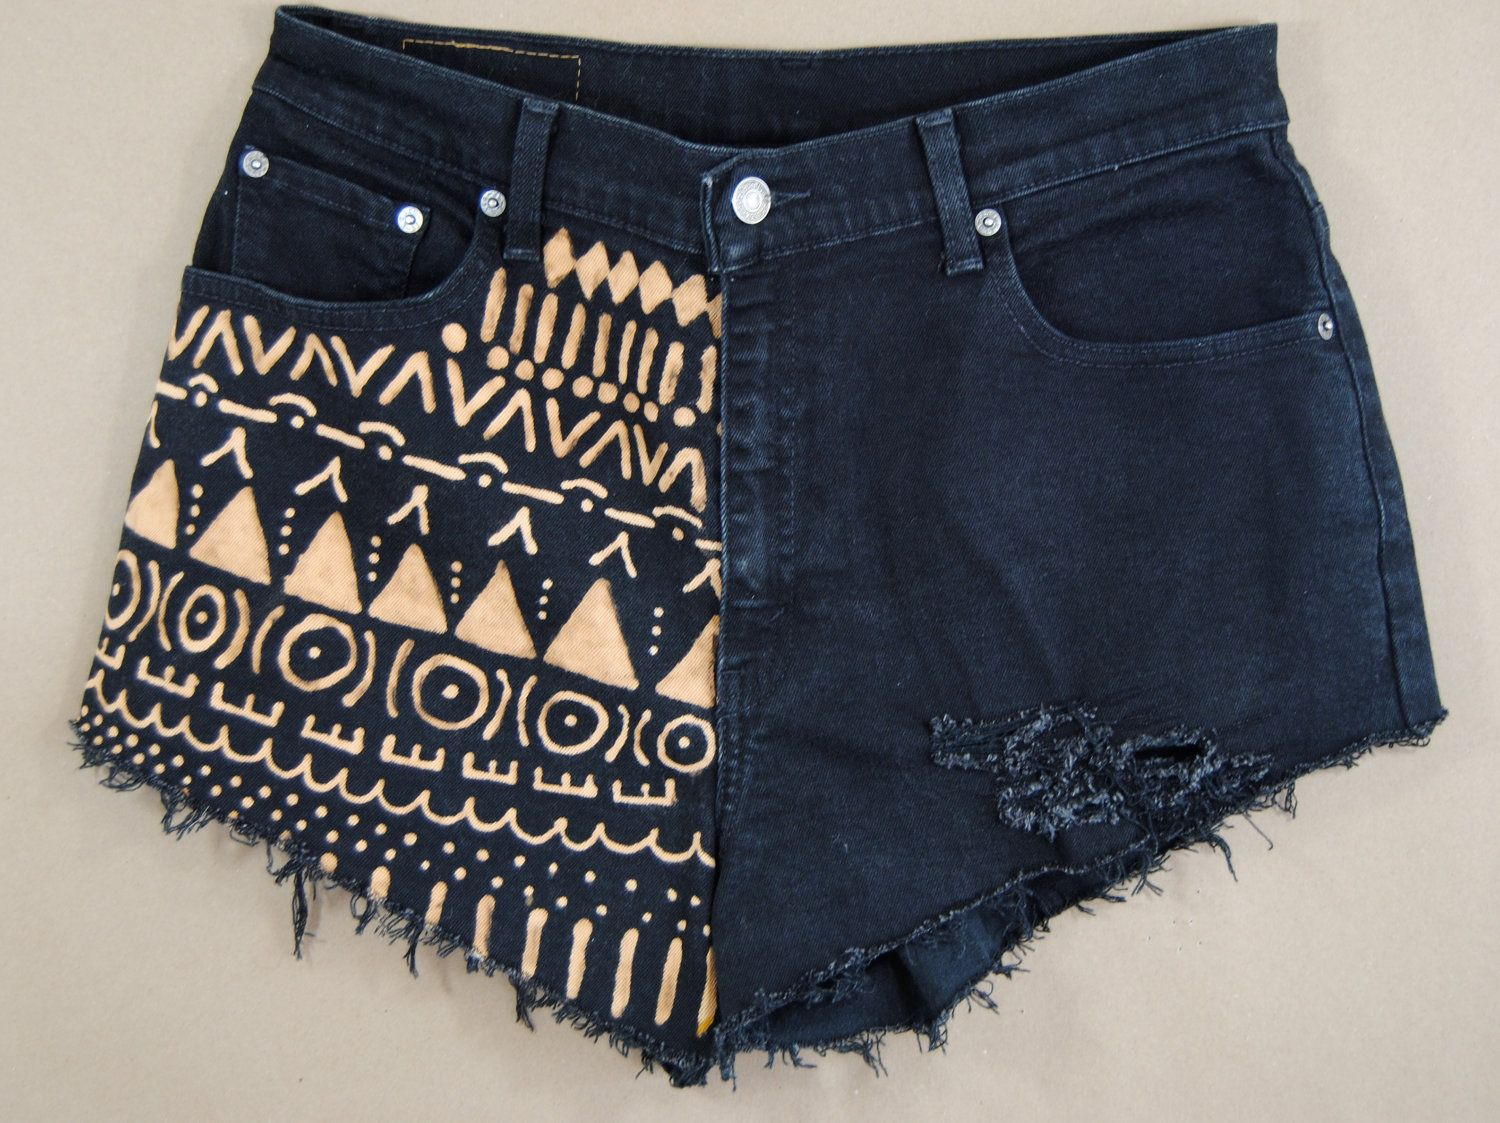 Bleached denim / tribal printed shorts / hand painted shorts ...